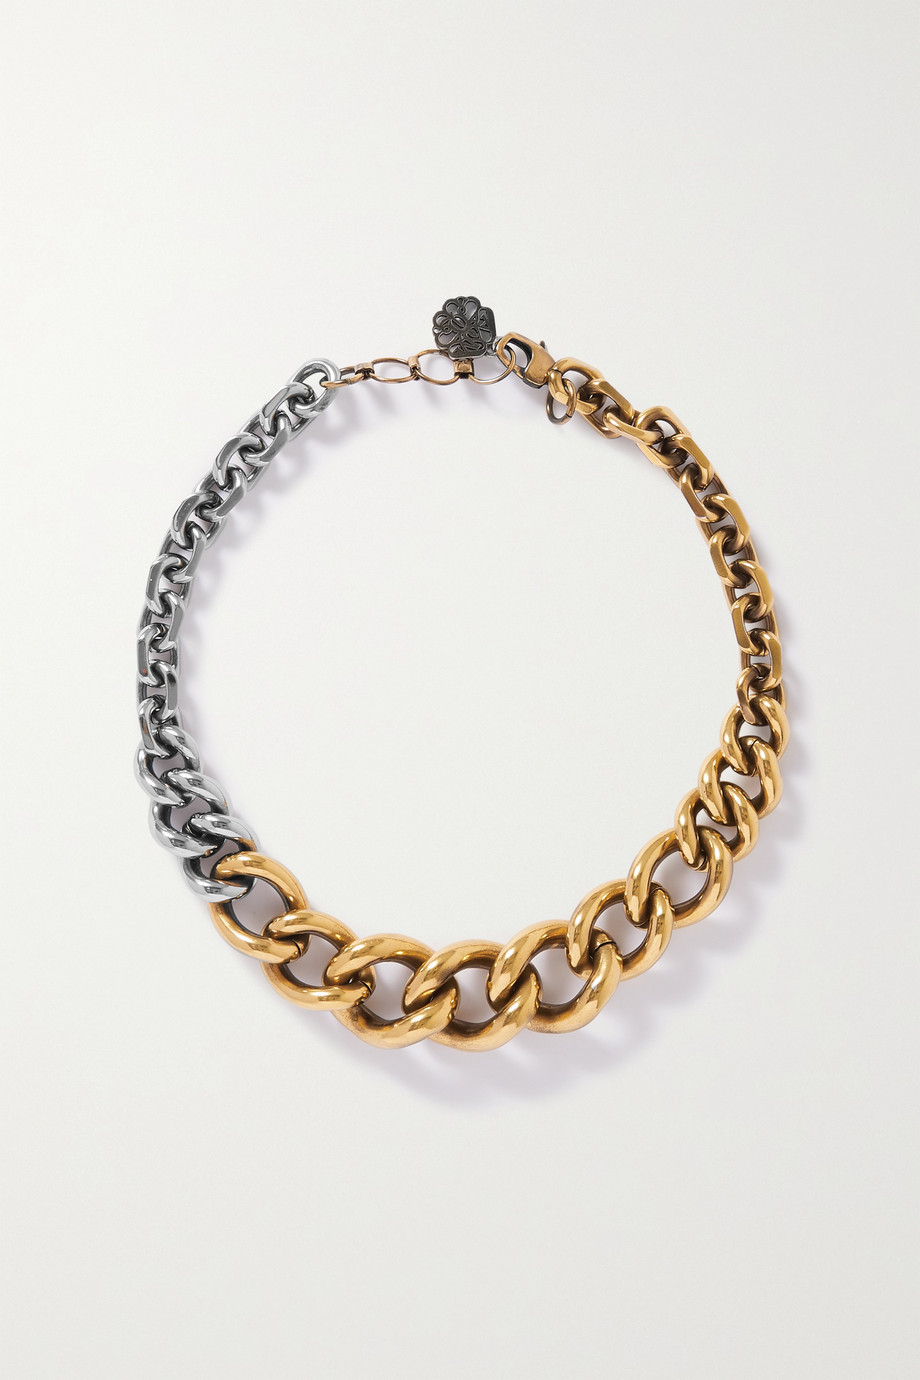 ALEXANDER MCQUEEN Gold and silver-tone necklace